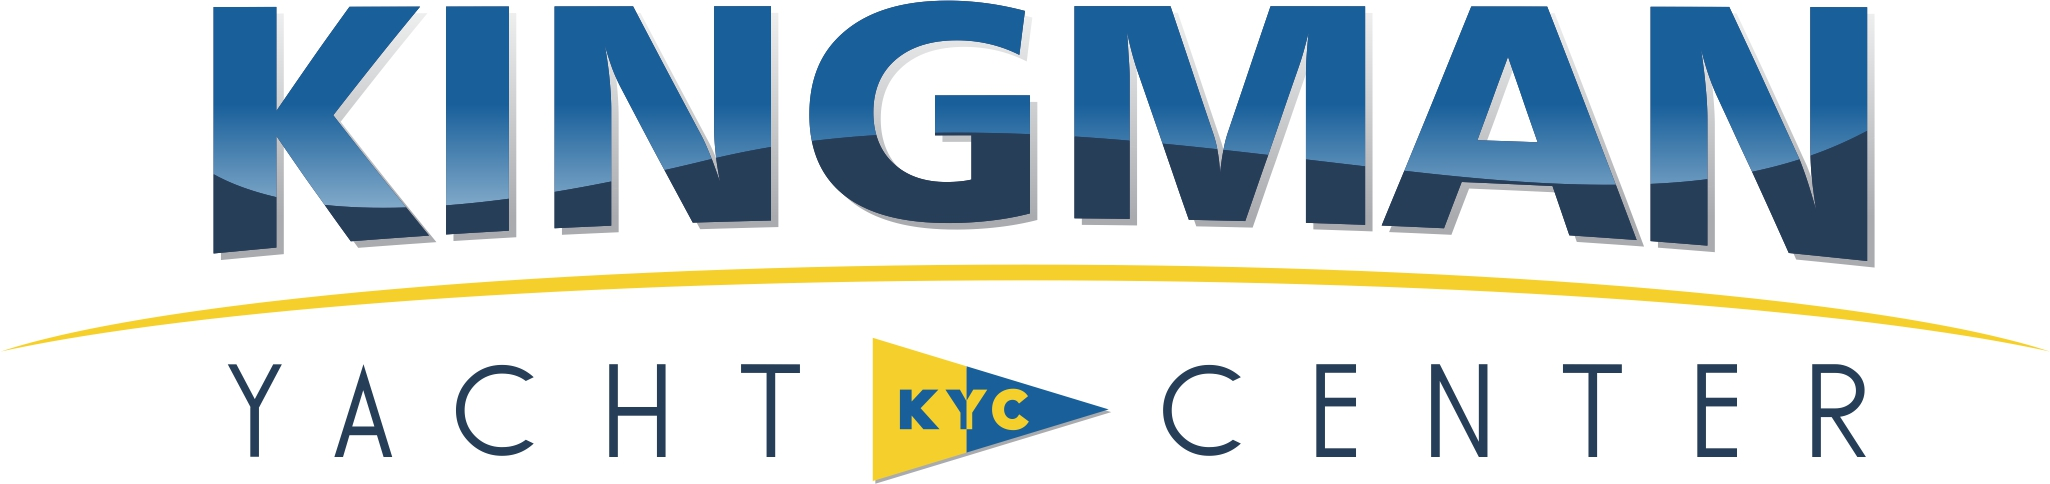 kingman yacht center logo for PHD sponsor